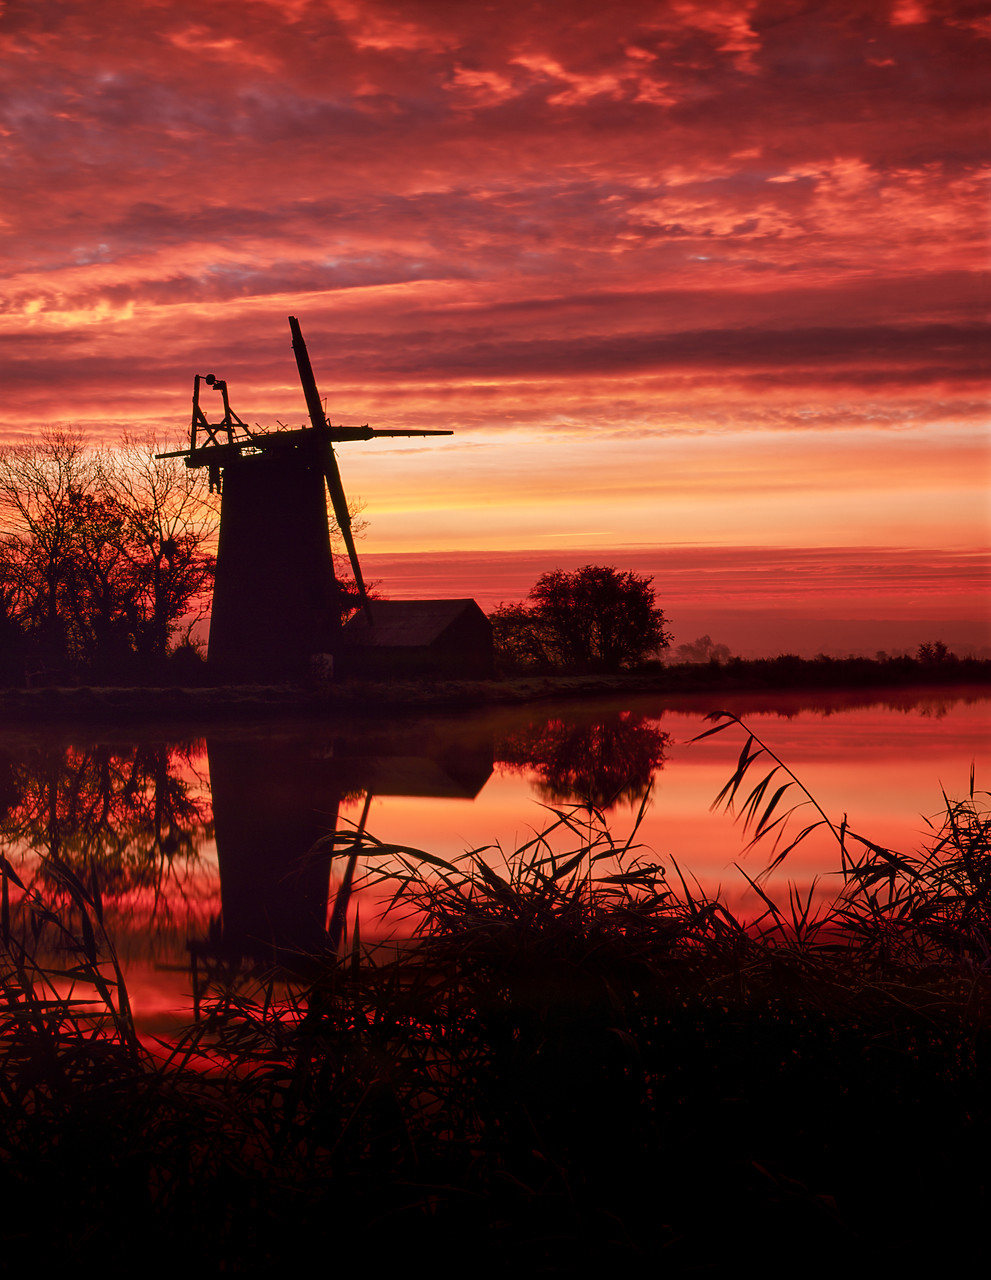 #400137-1 - Oby Mill at Sunrise, Norfolk Broads National Park, Norfolk, England